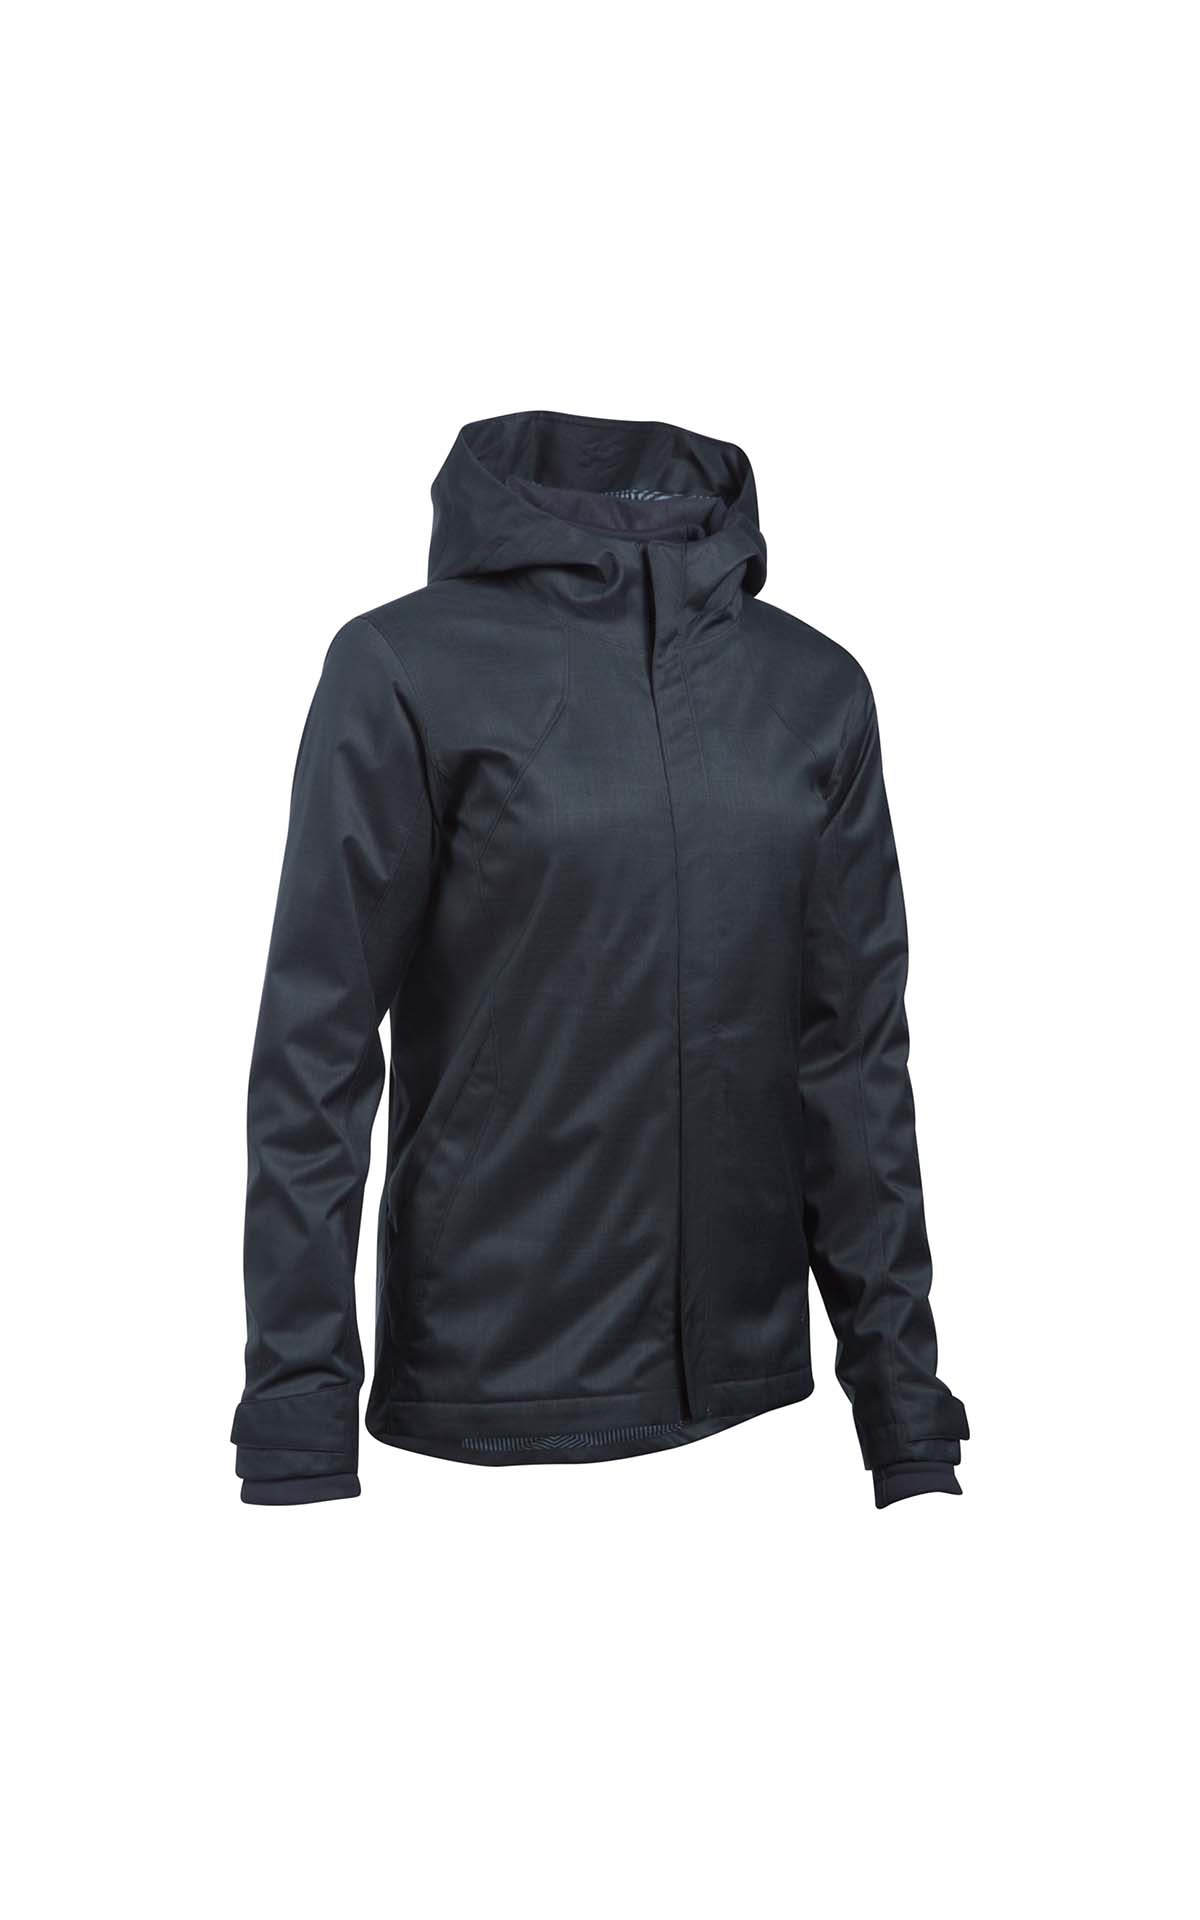 Under Armour Women's CGI Sienna 3 in 1 Jacket at The Bicester Village Shopping Collection